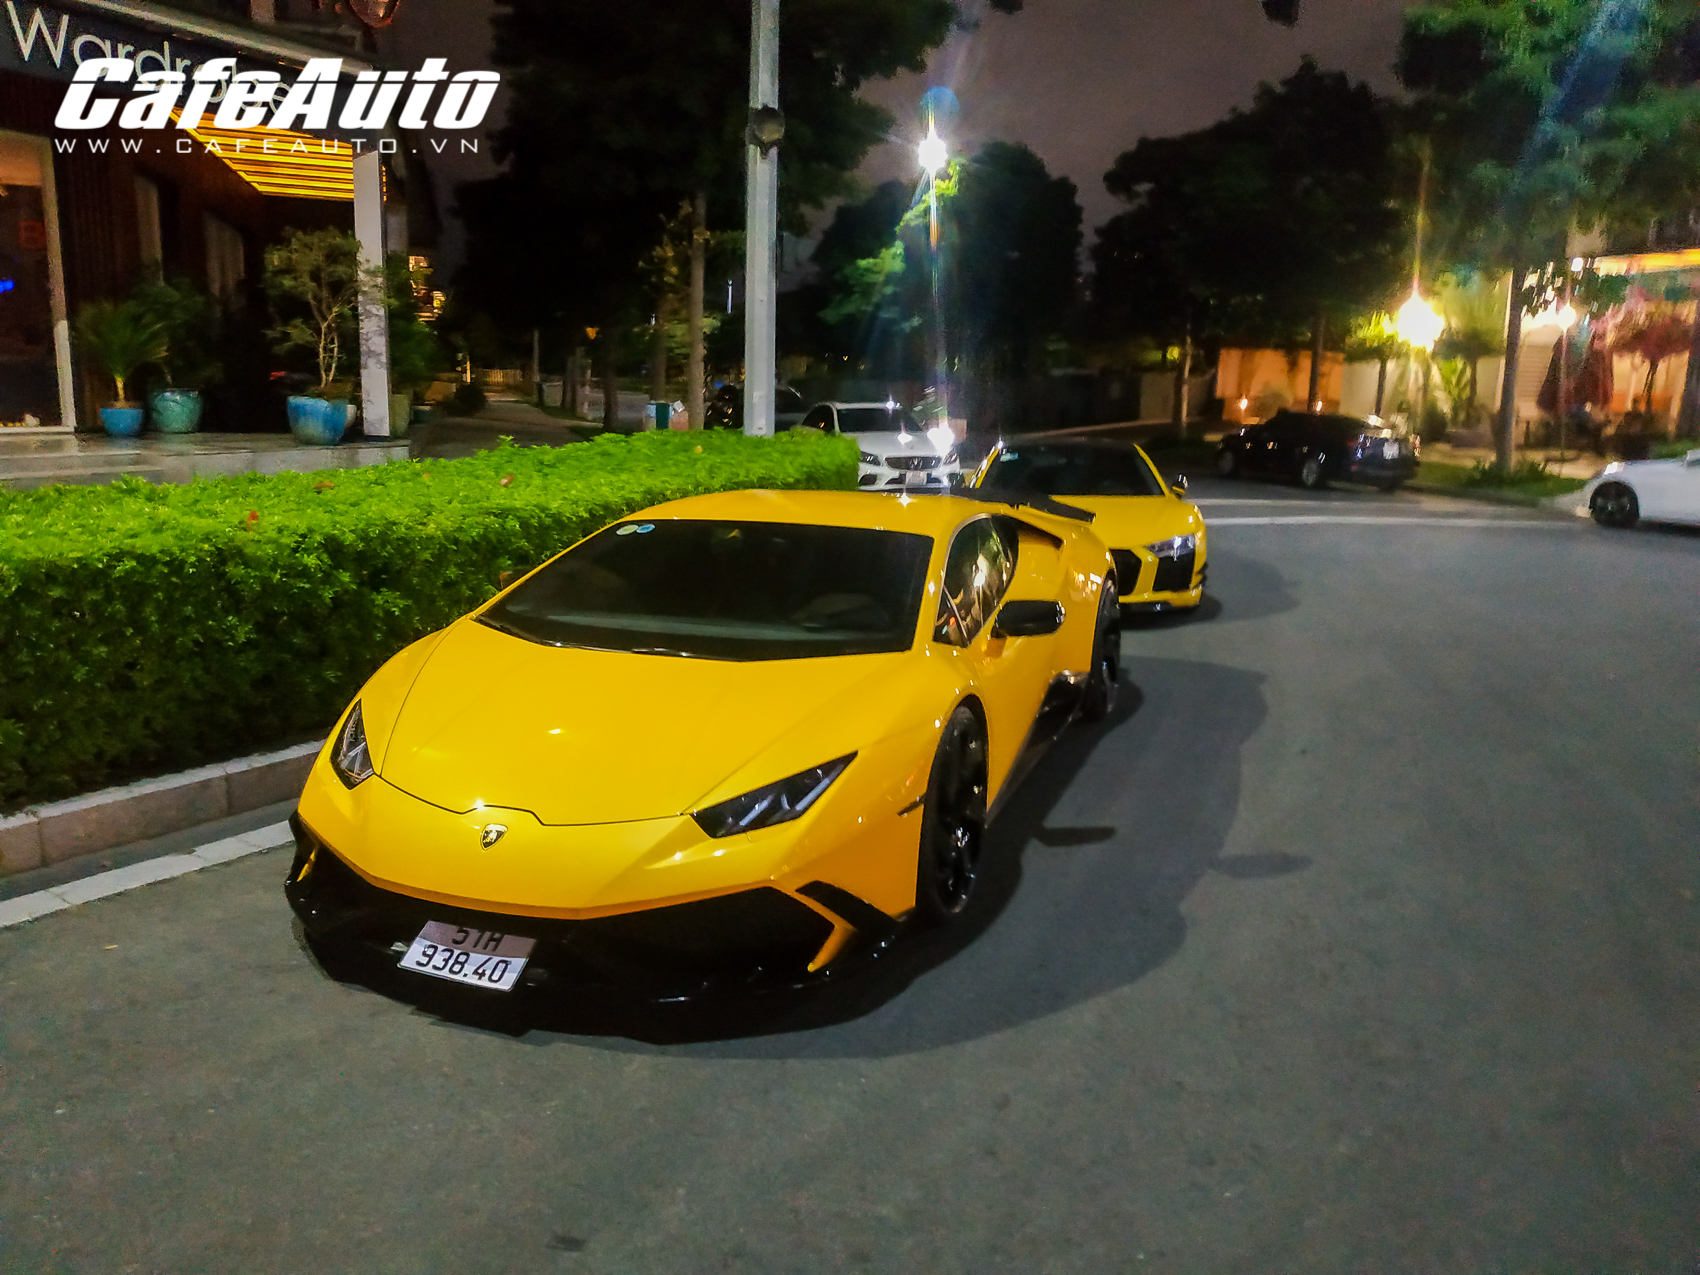 huracanmansory-cafeautovn-14